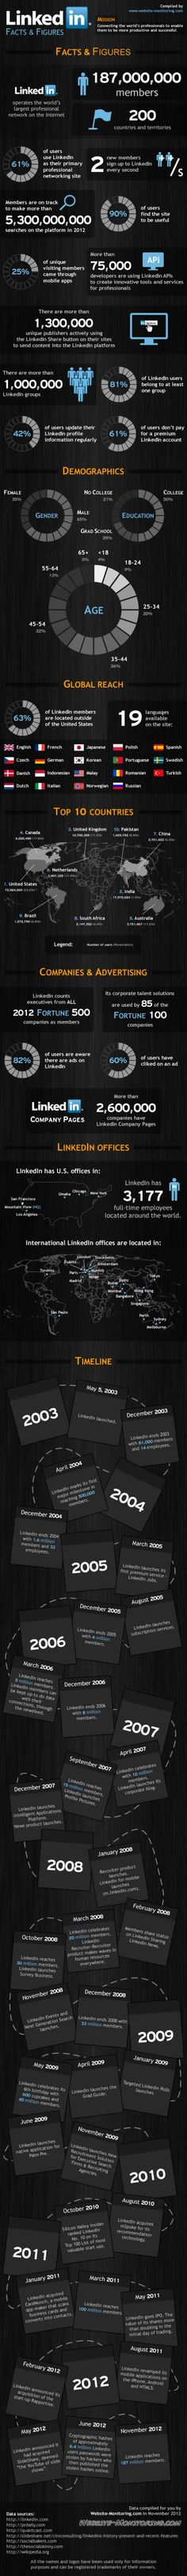 #LinkedIn facts & figures 2012 (cool #infographic) | via @UndercoverRec >